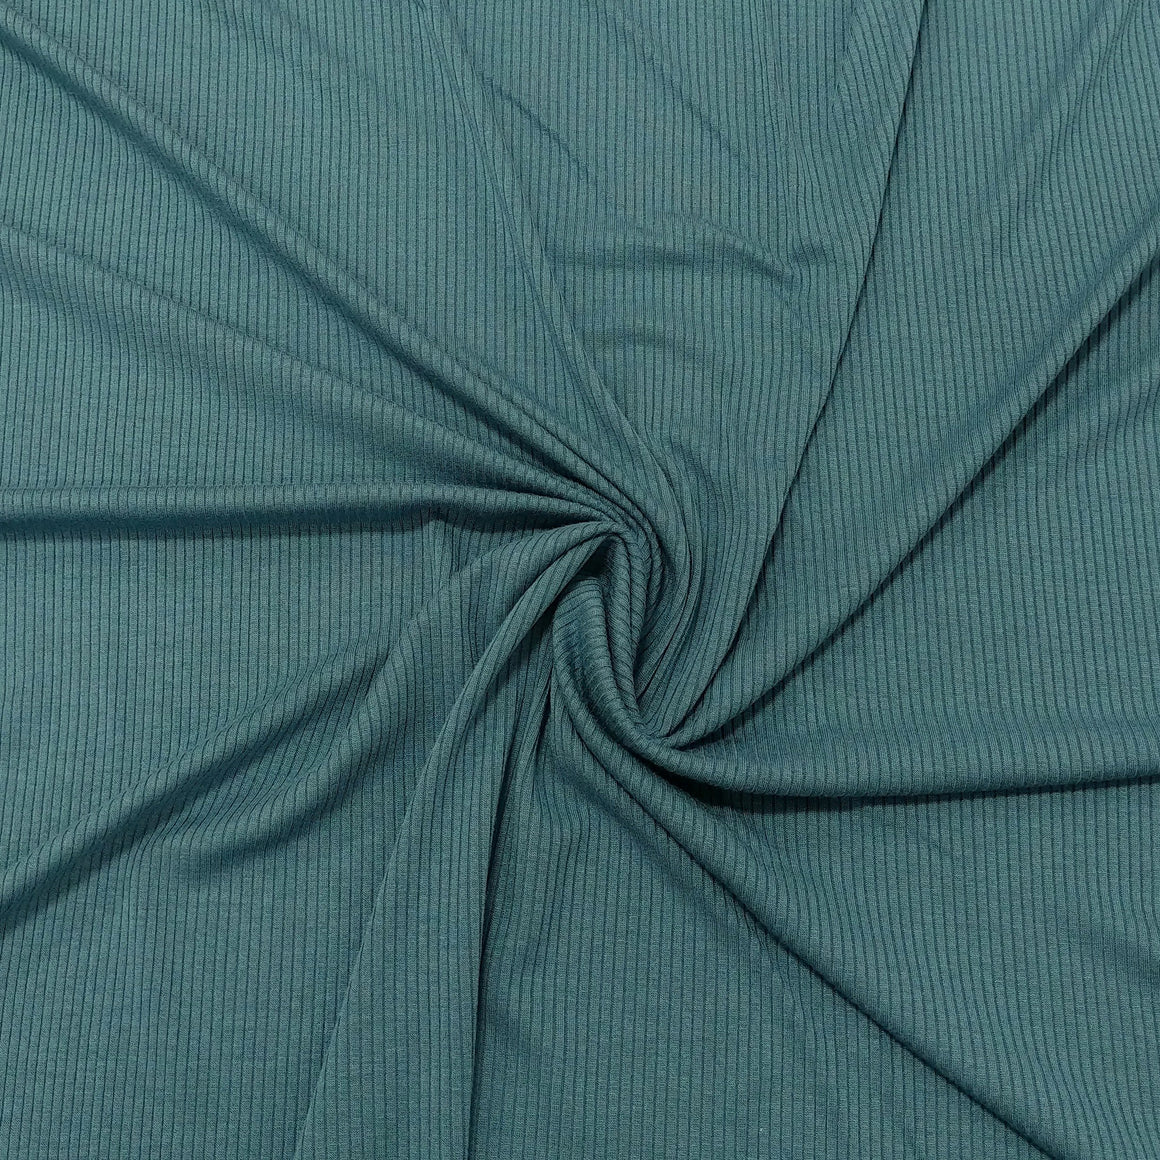 Solid Teal Blue Tencel Modal Spandex 4 Way Stretch 3x2 Rib Knit - Raspberry Creek Fabrics